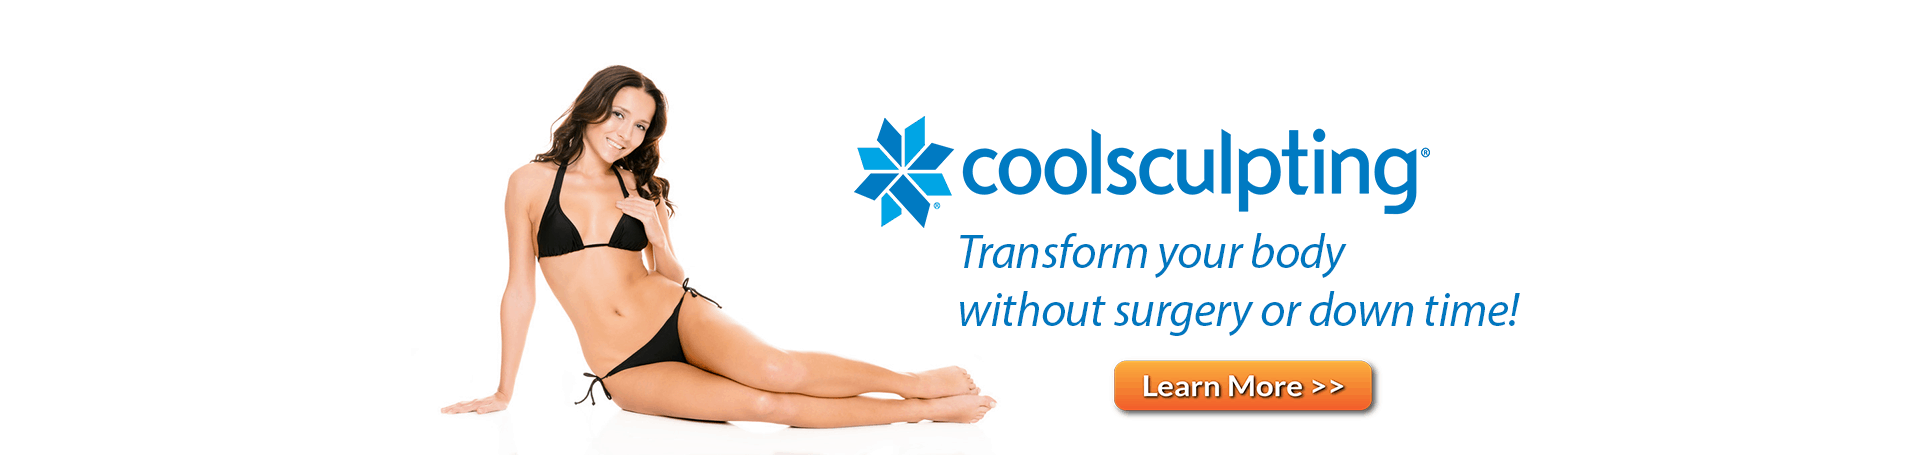 Dr.-Coscia-Rev-Slider-for-CoolSchulpting-Treatment